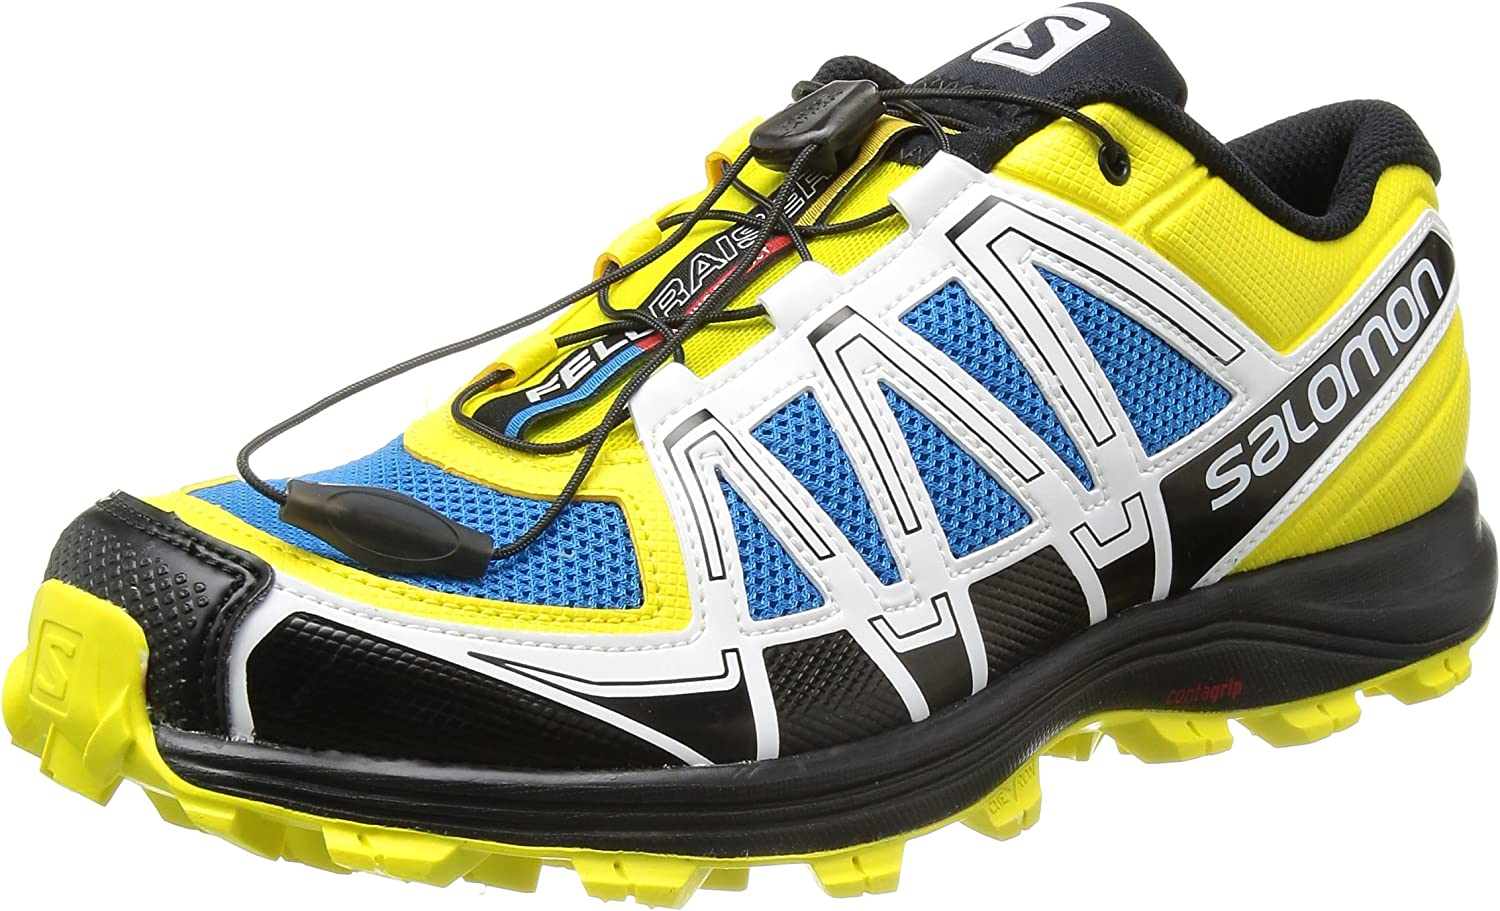 SALOMON Fellraiser Zapatilla de Trail Running Caballero, Amarillo/Negro, 49 1/3: Amazon.es: Zapatos y complementos